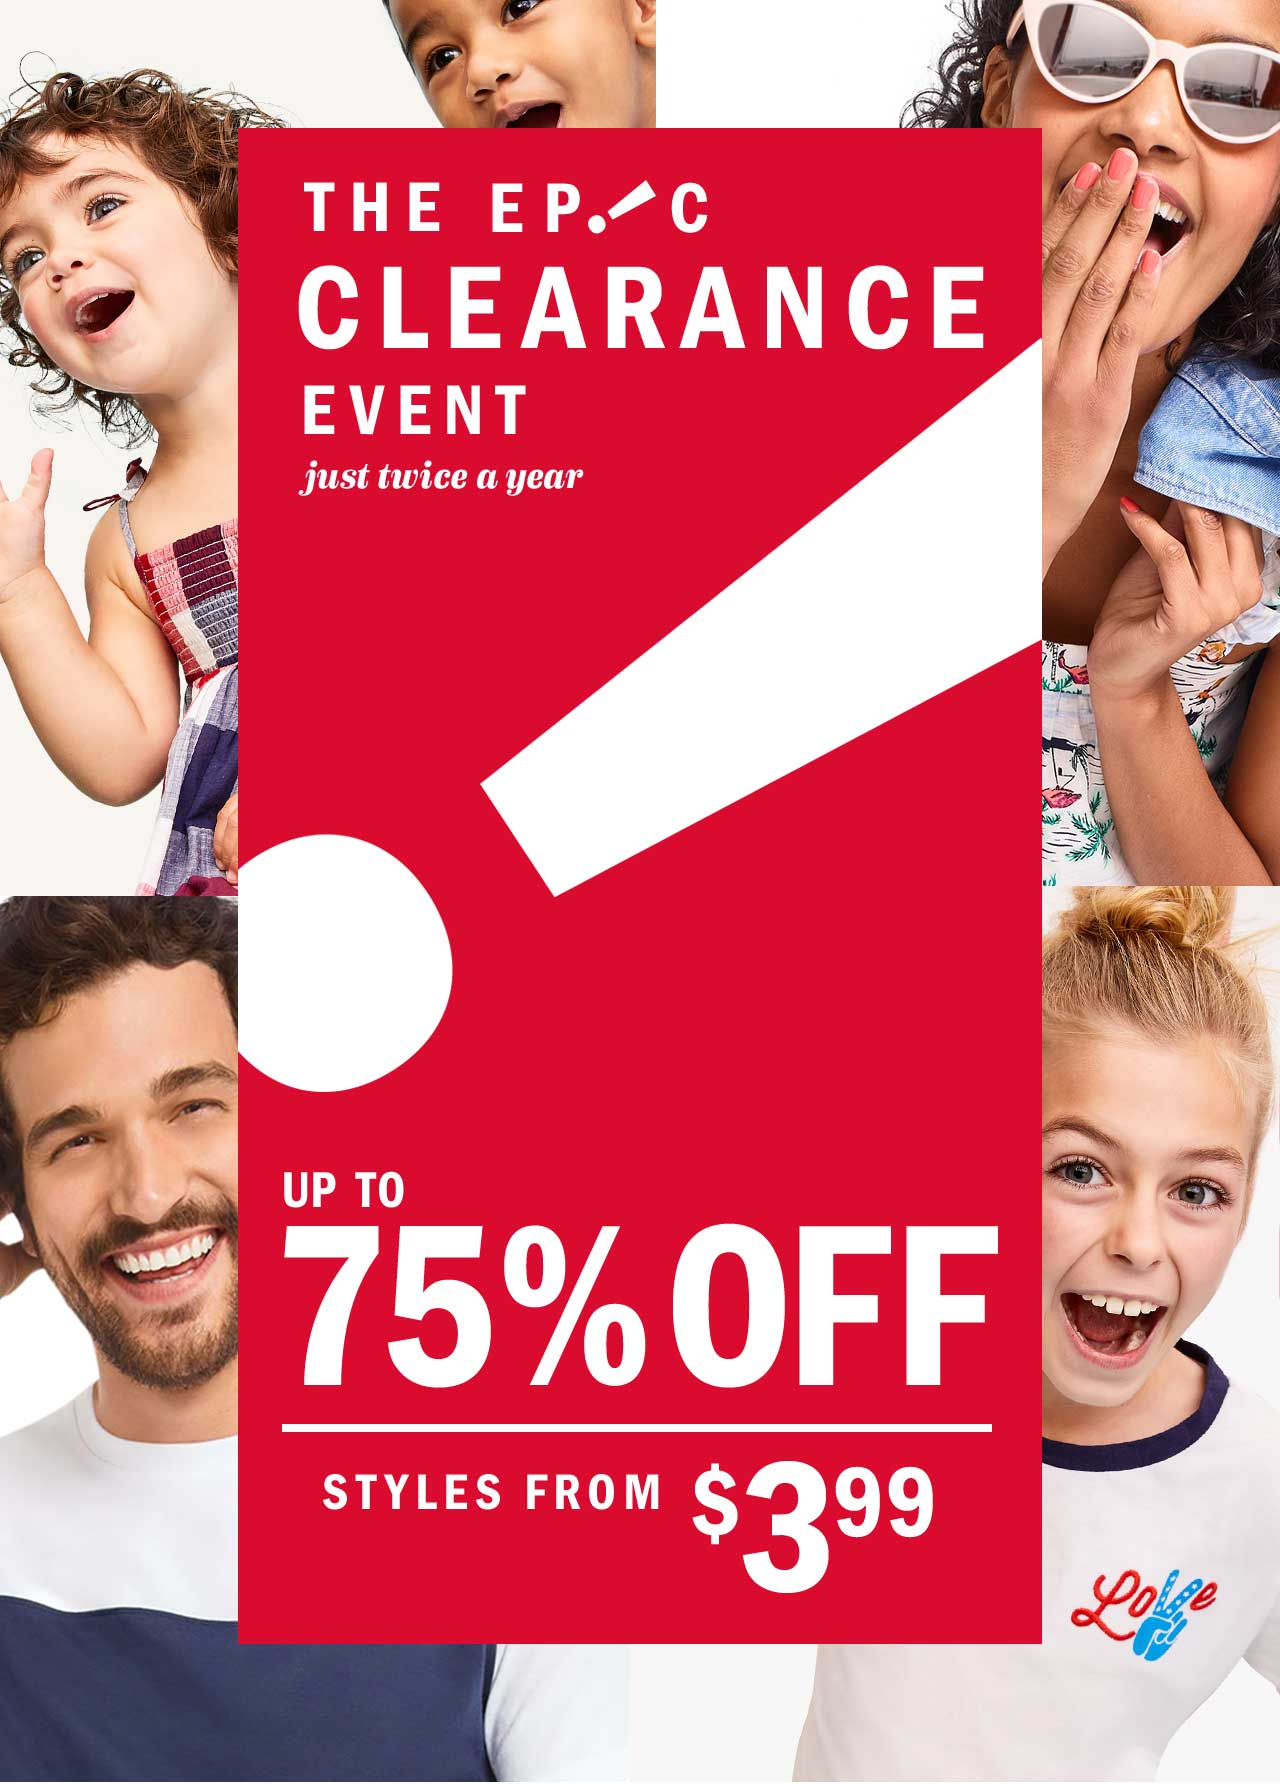 THE EPIC CLEARANCE EVENT